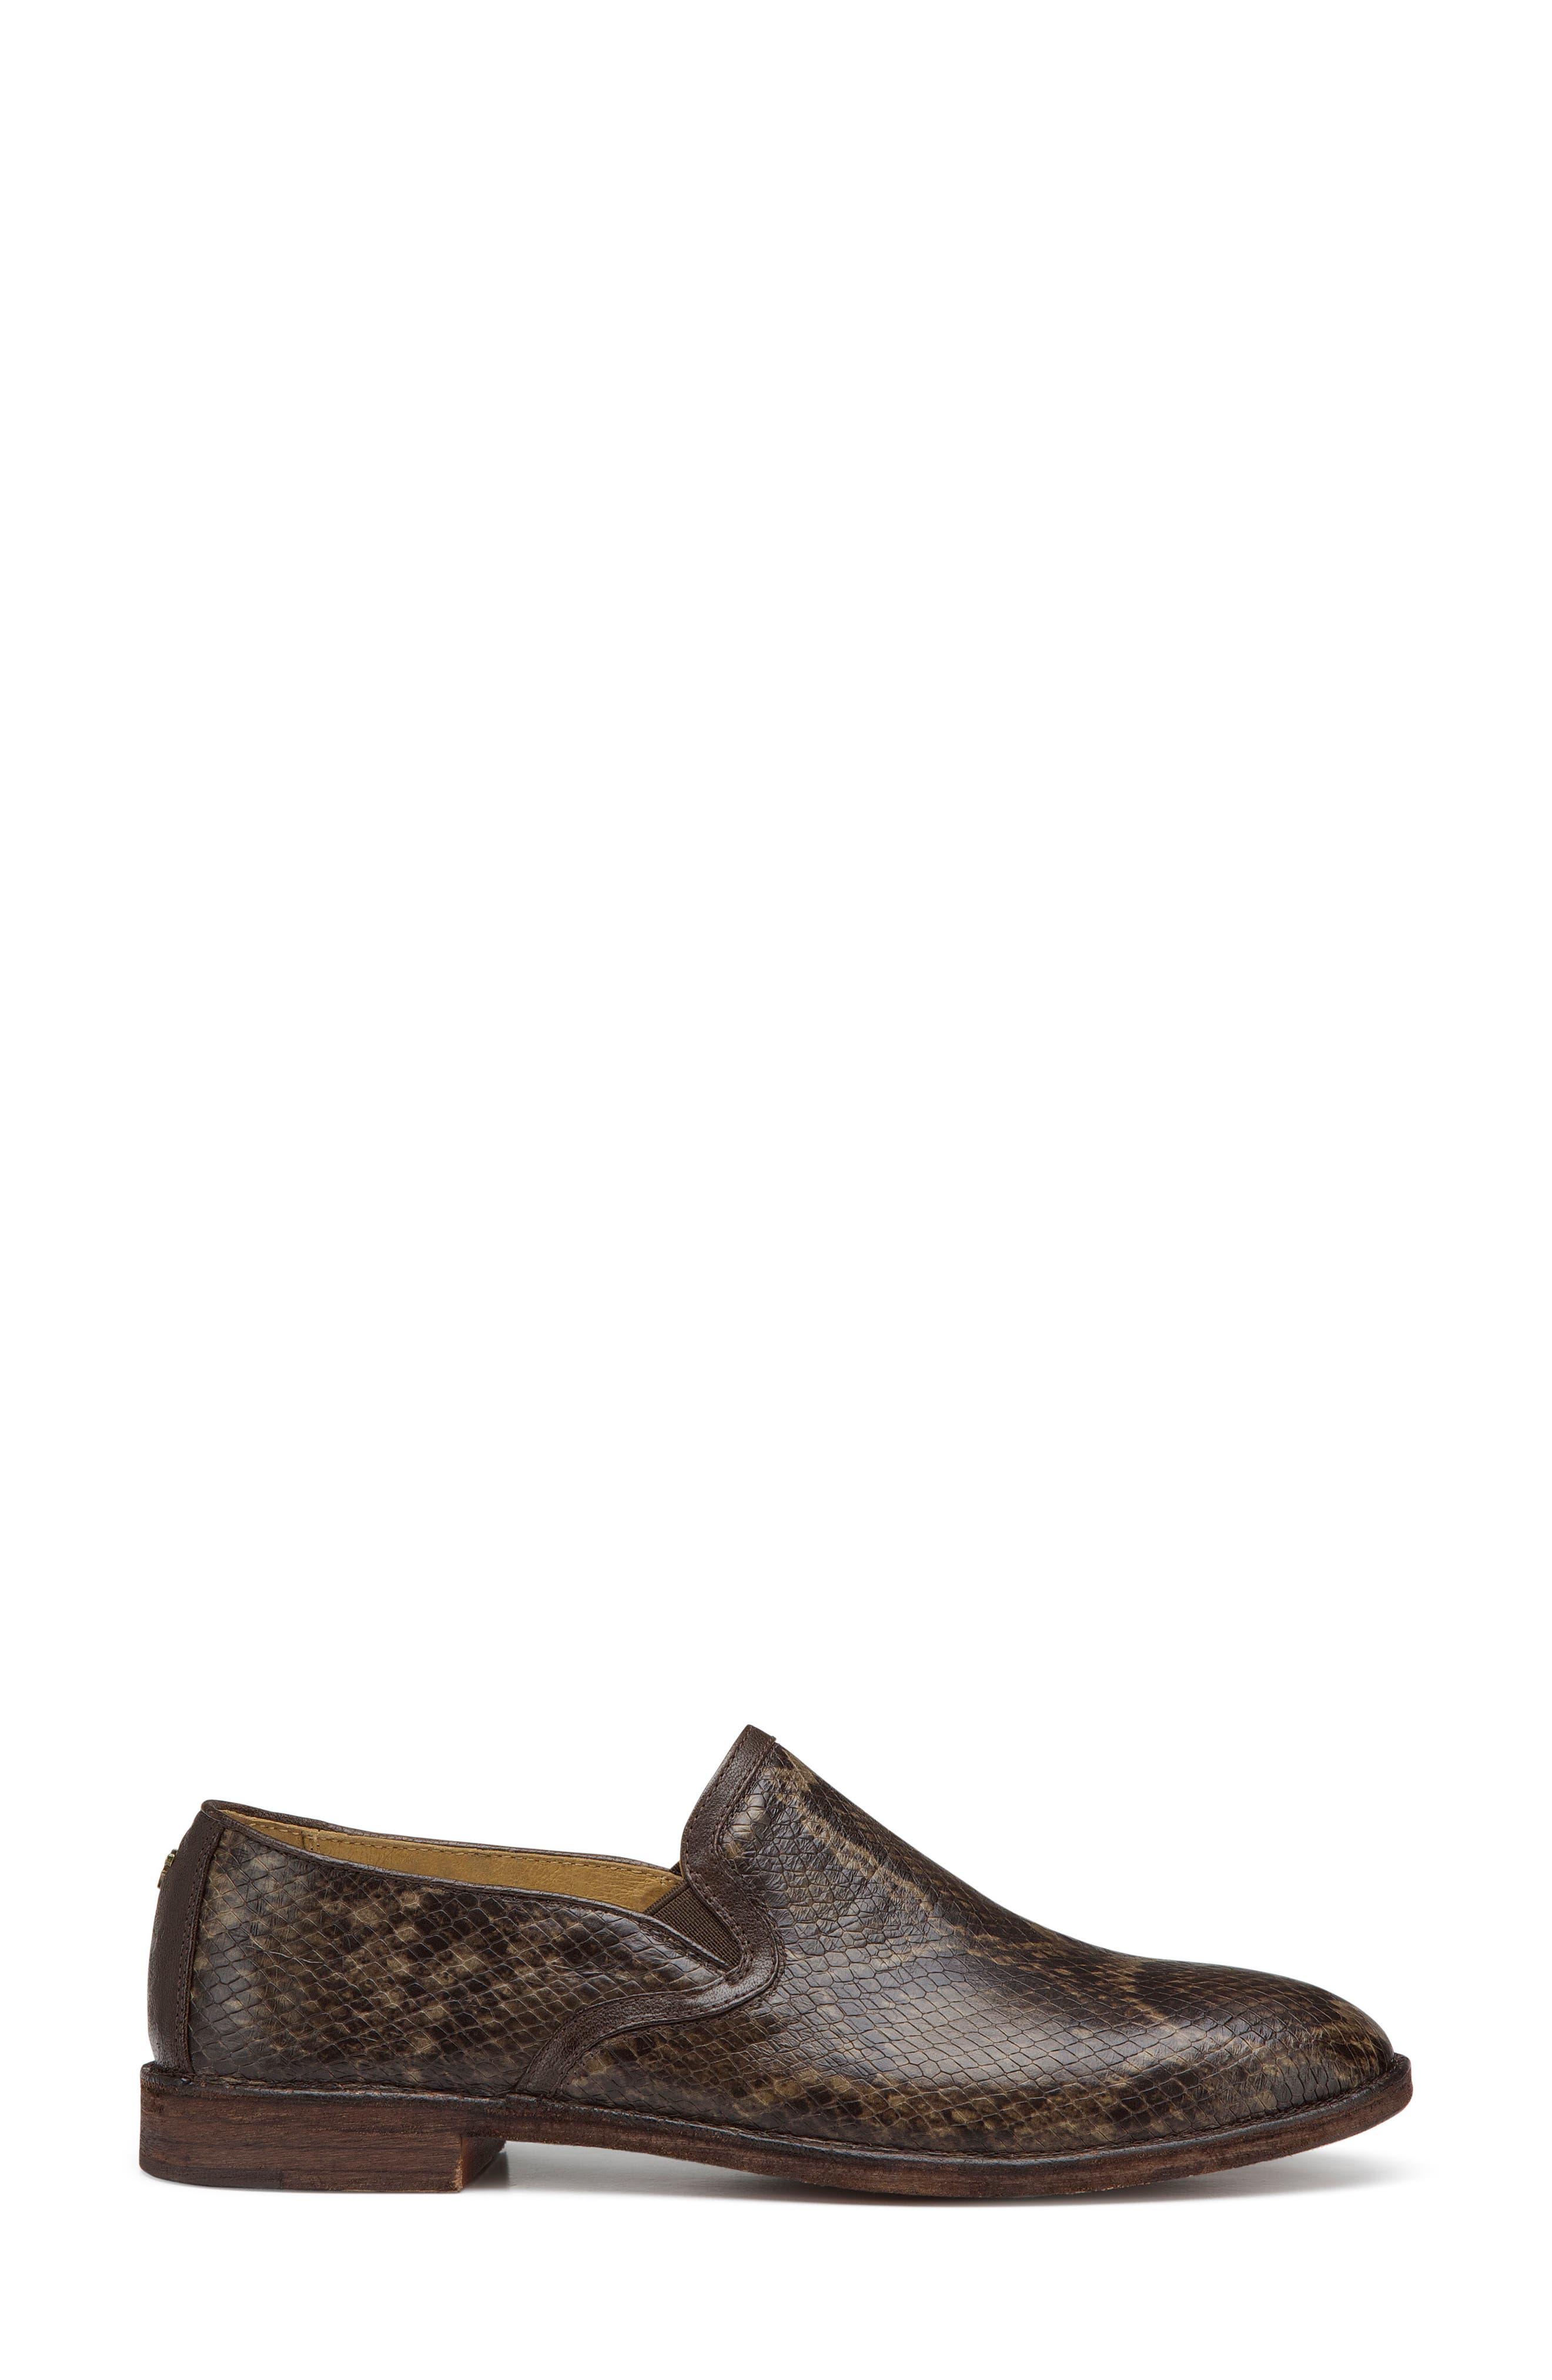 'Ali' Flat,                             Alternate thumbnail 3, color,                             Brown Print Leather